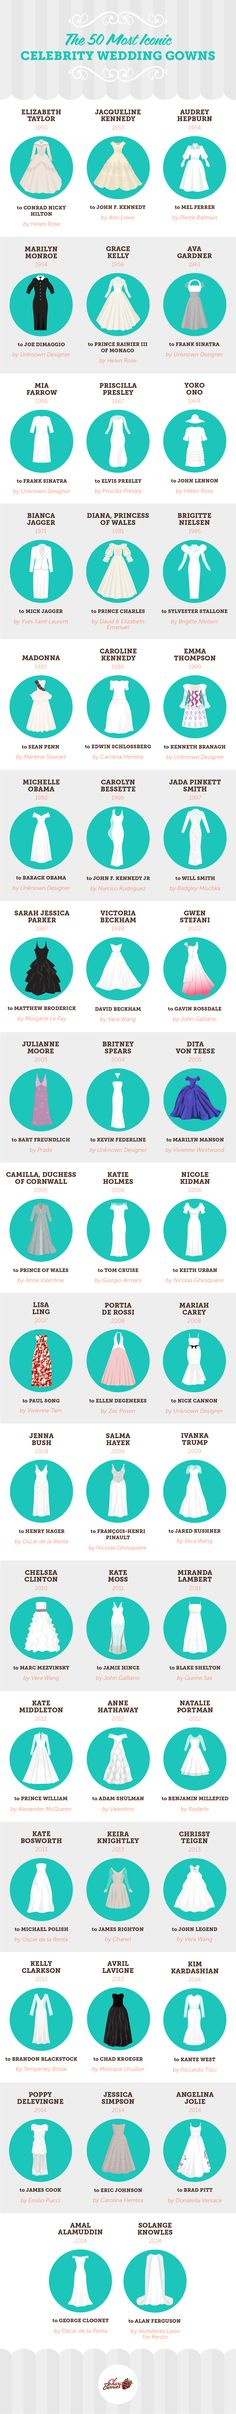 50 Amazing Celebrity Wedding Dresses - It always makes an entrance, and is probably the most unforgettable dress you'll ever wear: the wedding dress. And if it's a celebrity wedding, you know the dress will be even more glamorous and amazing.